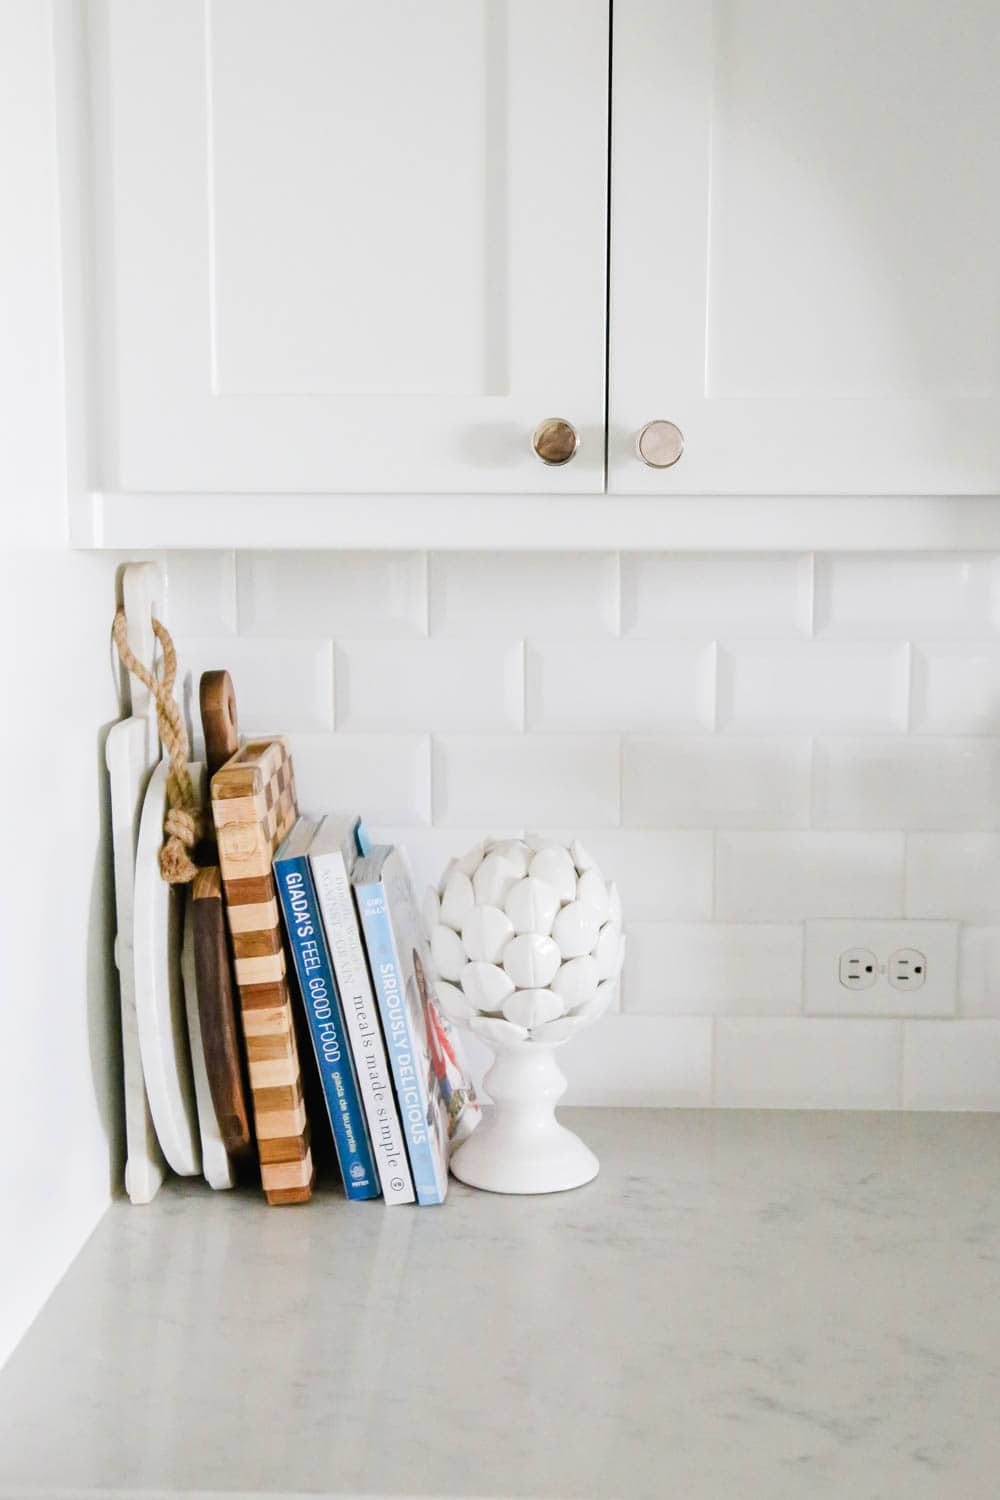 Kitchen counter decorating with cookbooks and cutting boards. #whitekitchen #kitcheninspo #kitchendecor #ABlissfulNest